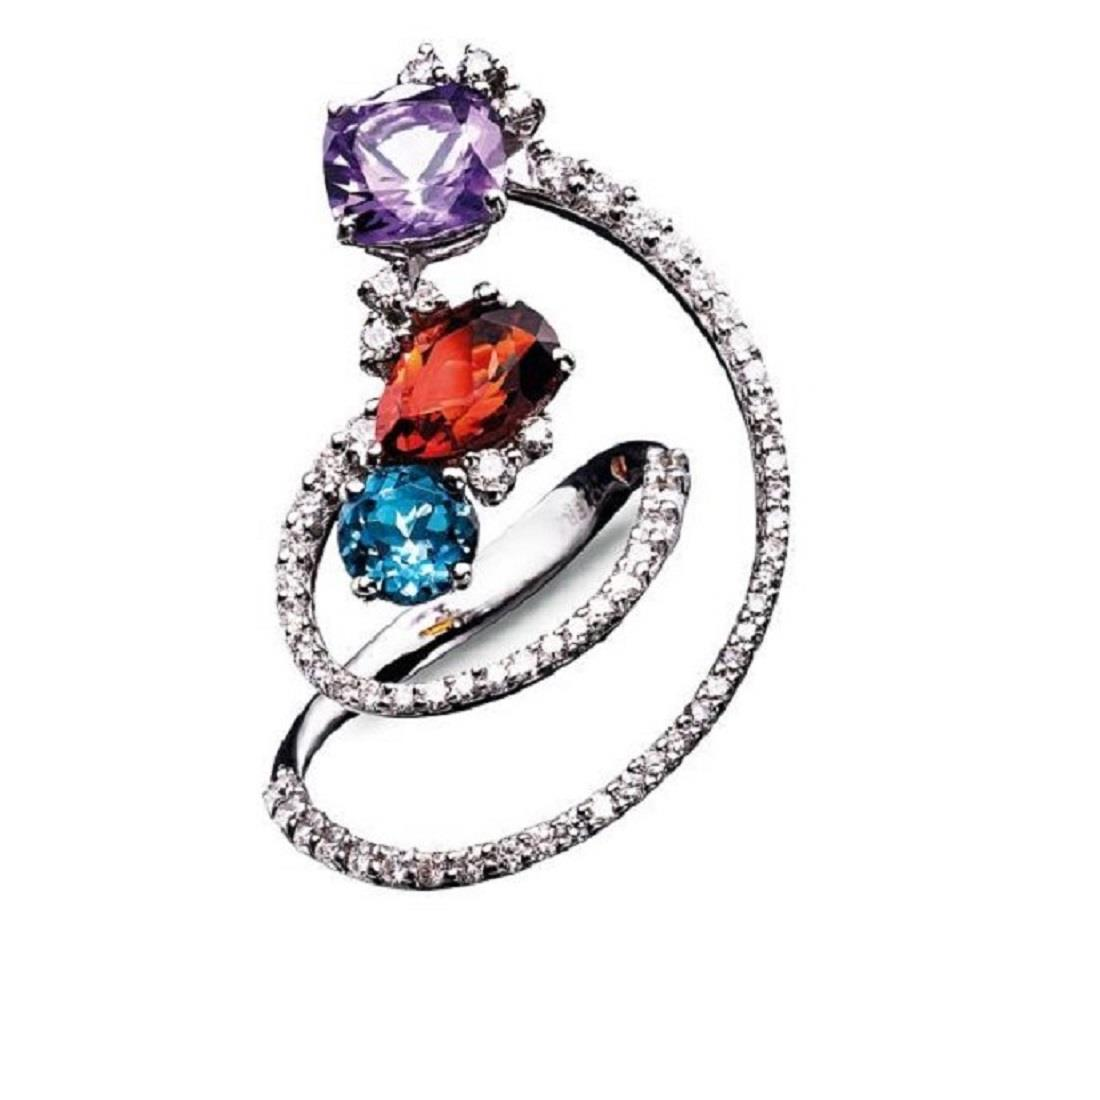 Twisting 18 kt white gold ring with round-cut london topaz, antique-cut amethyst, drop-cut madera quartz and 1,13 ct diamonds